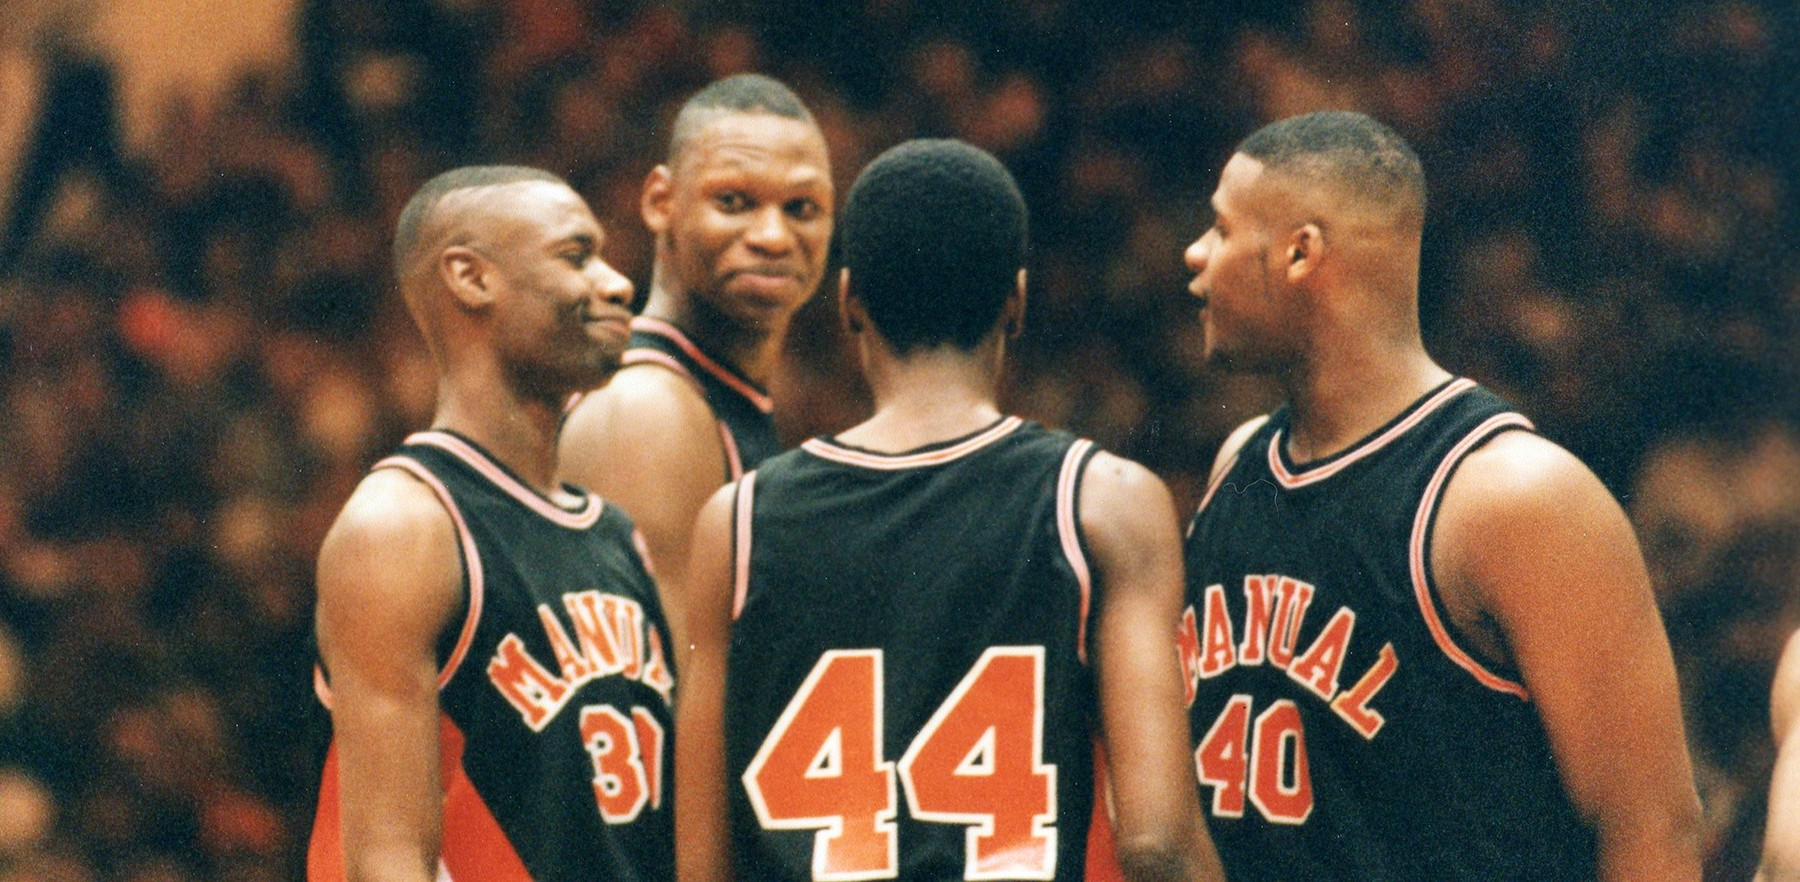 Former Illini greats on the court